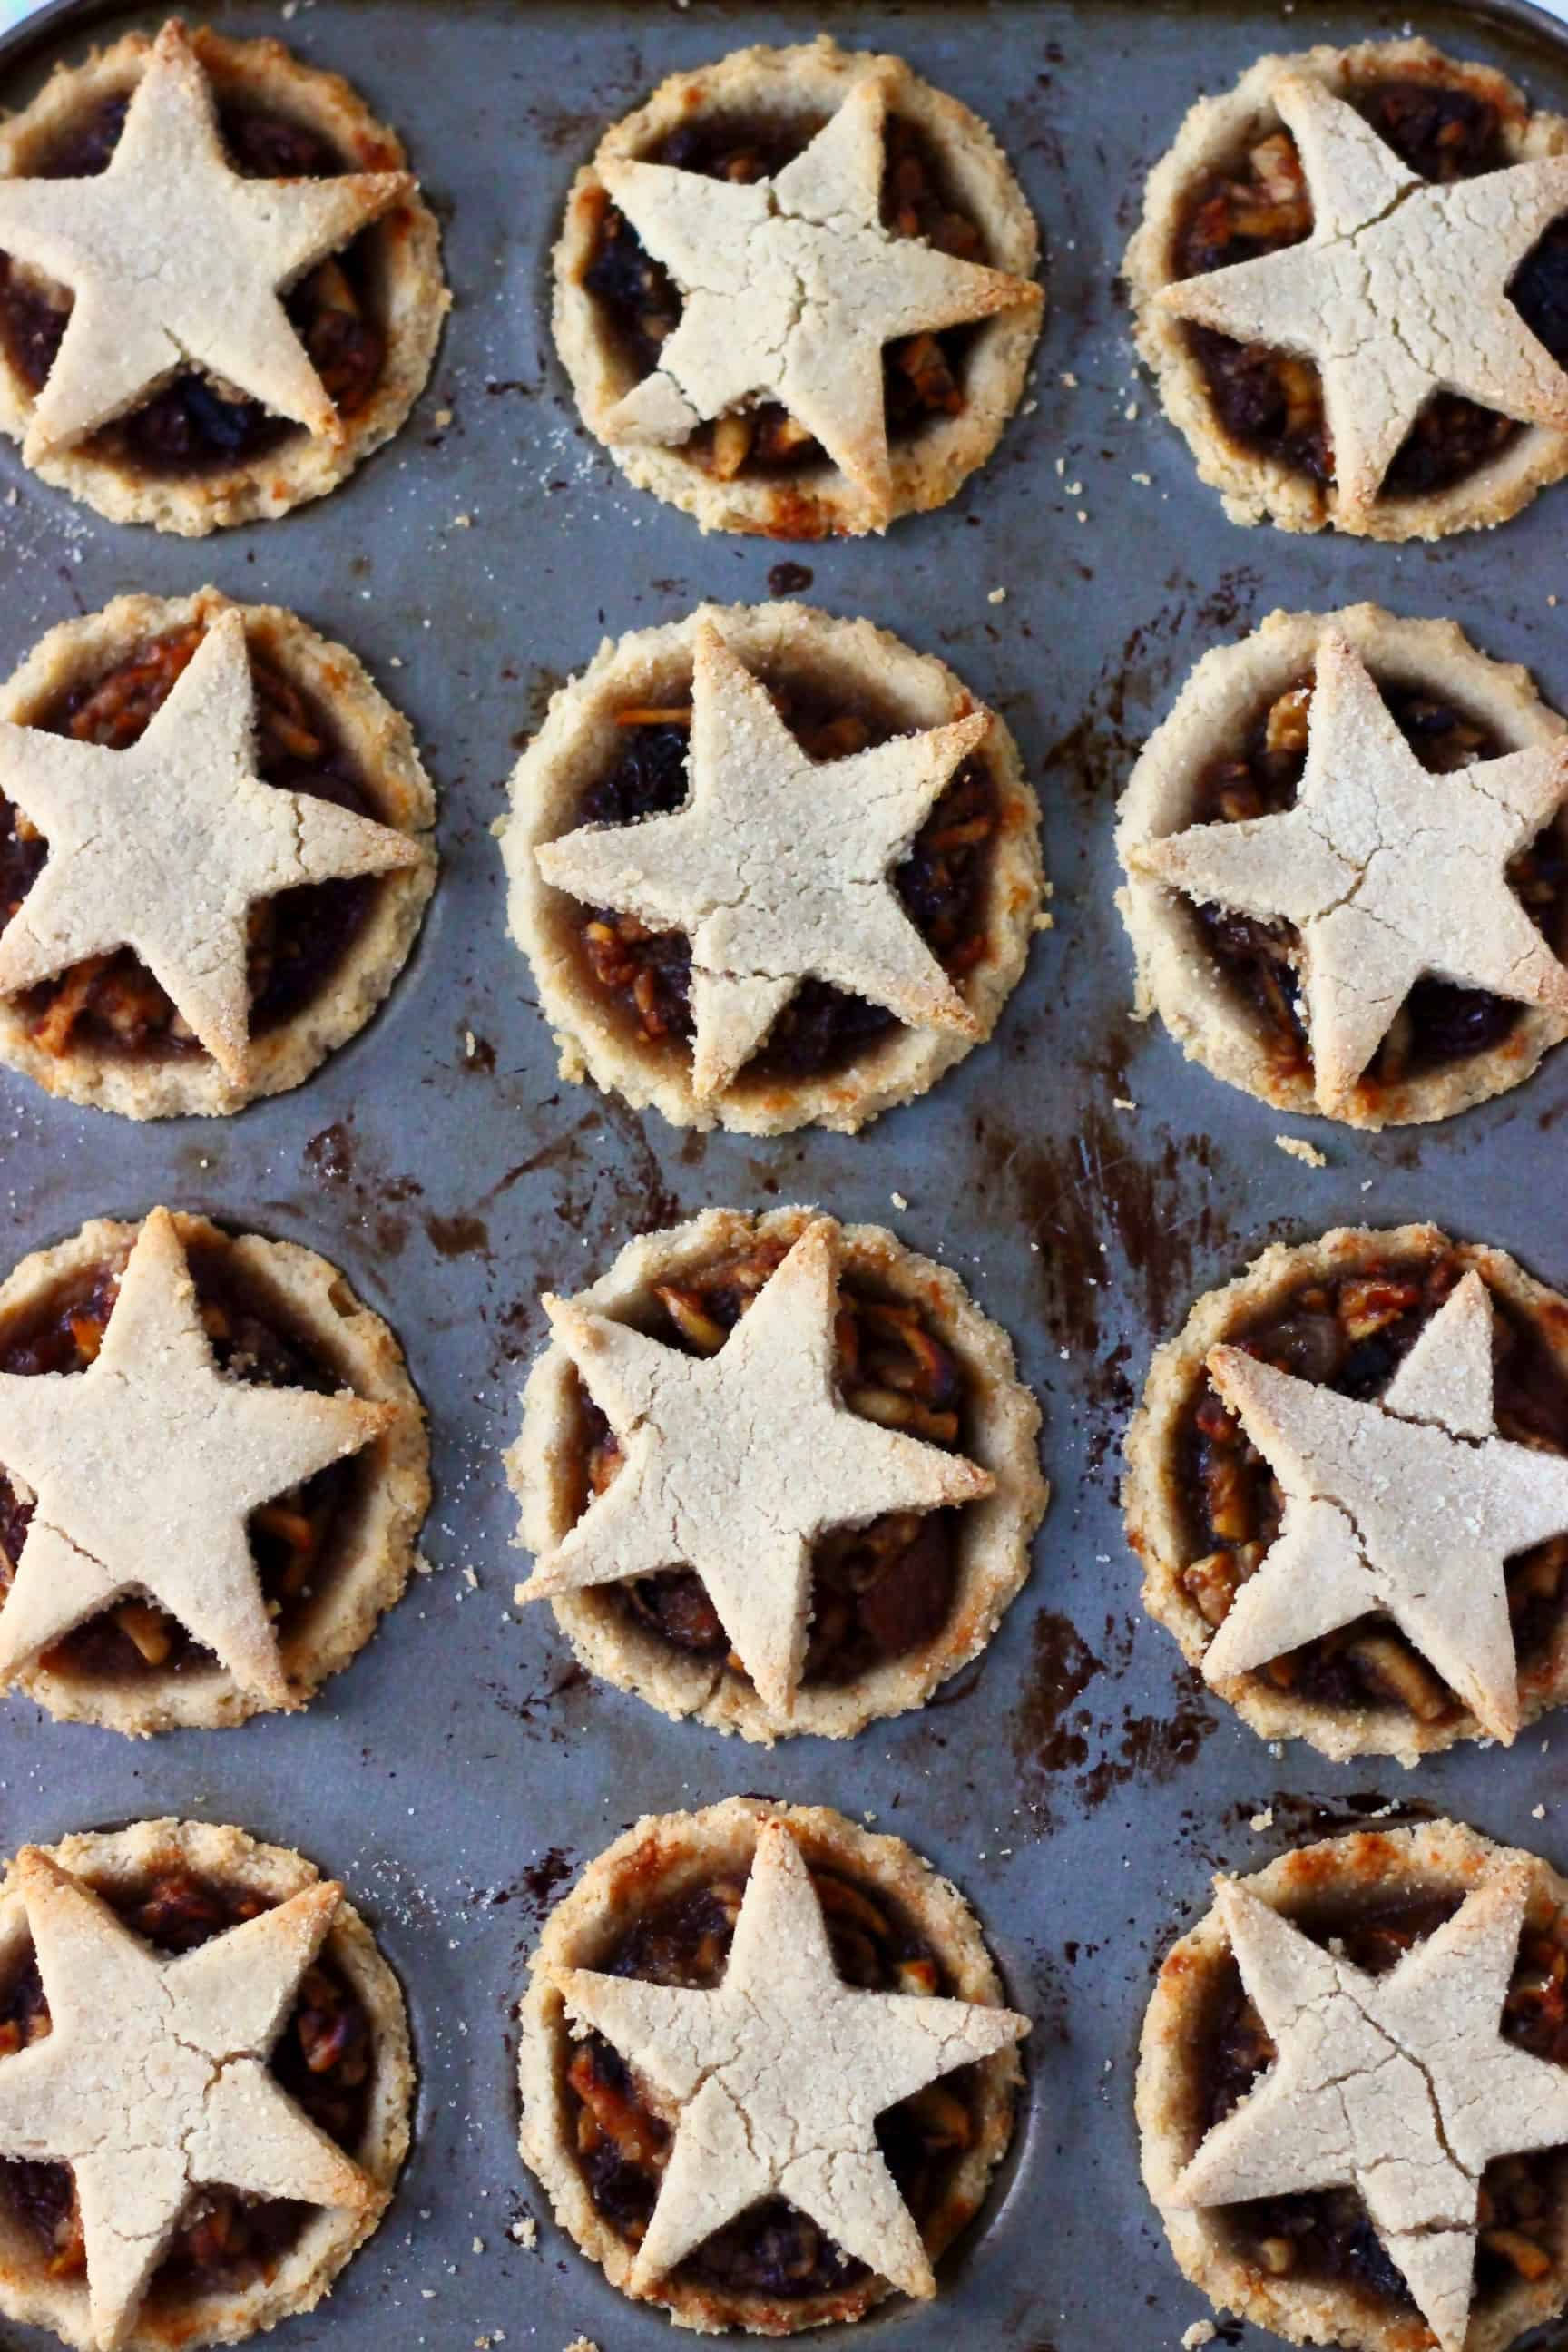 Twelve gluten-free vegan mince pies in a muffin tin topped with pastry stars